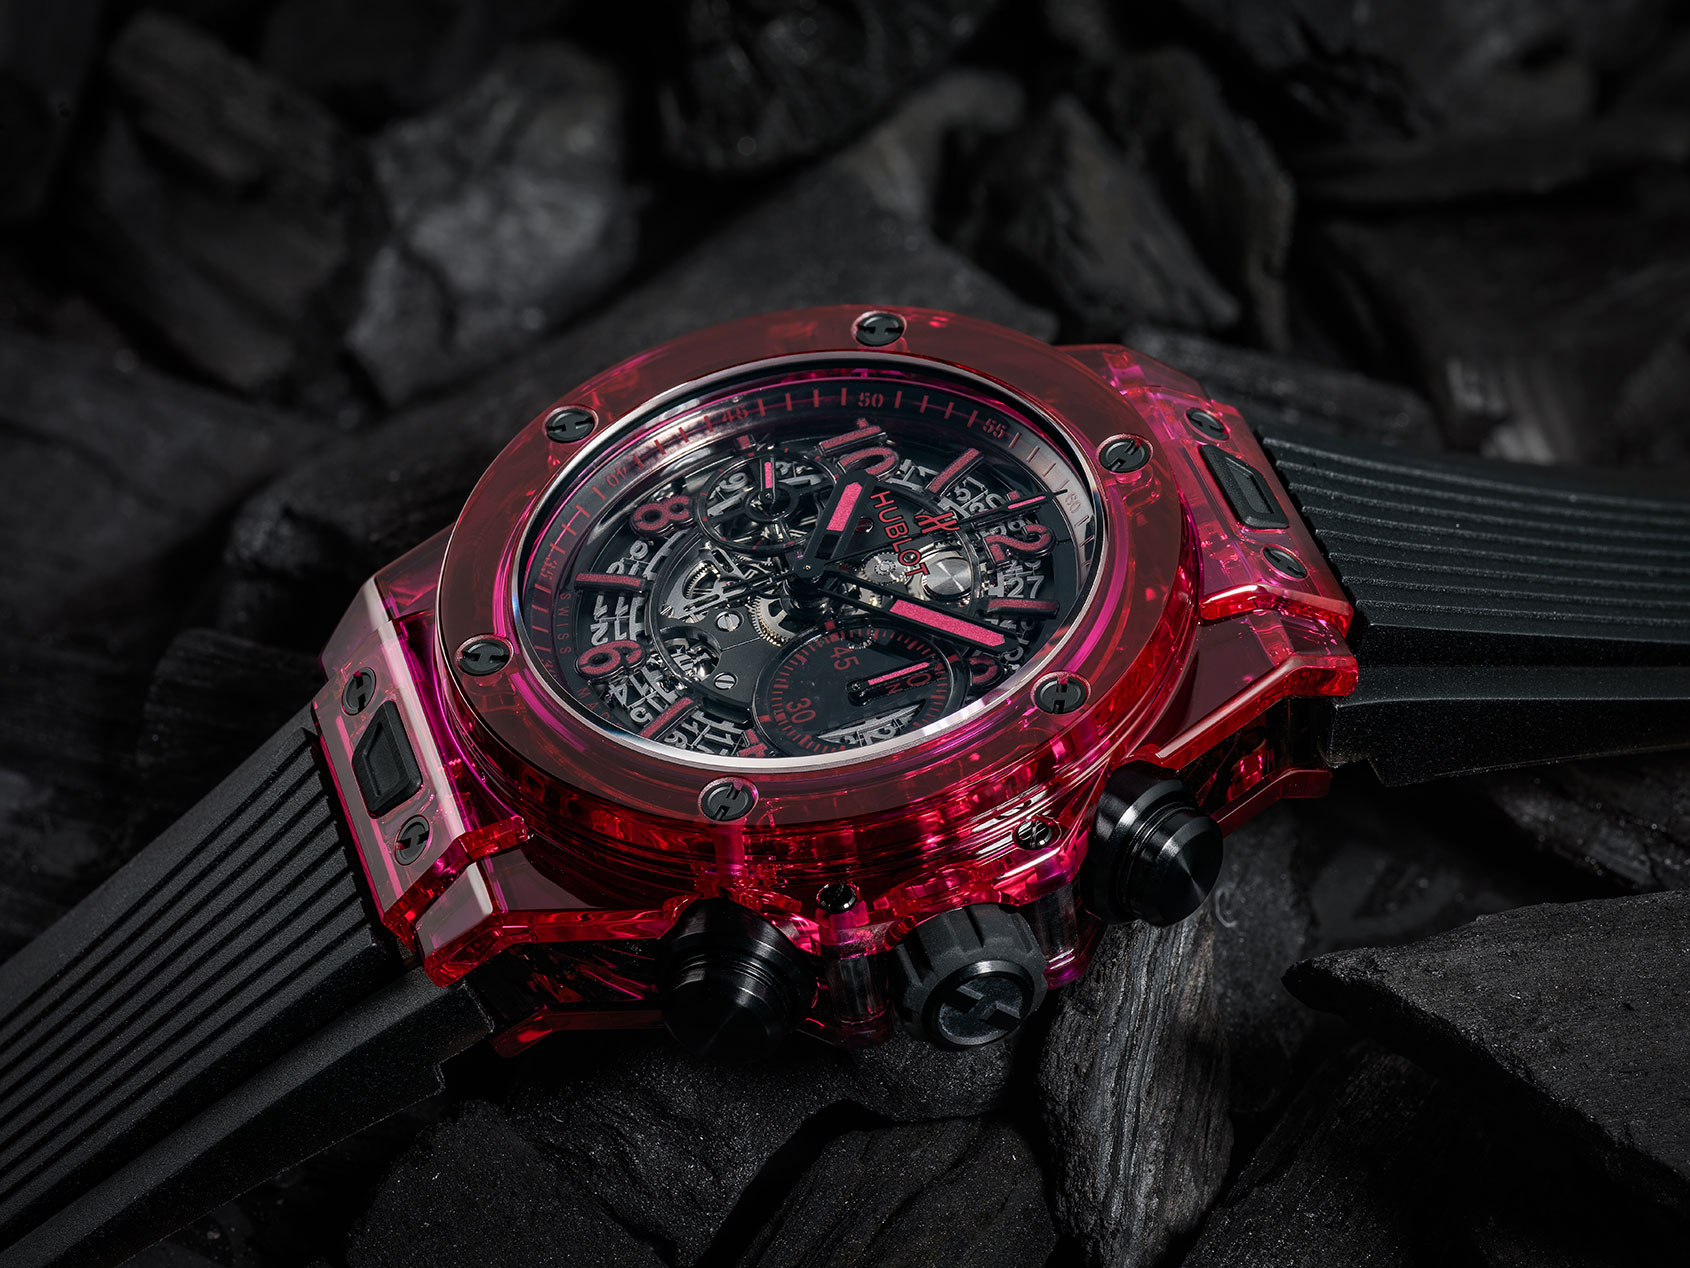 Porthole perfection: Our top 5 Hublot watches from 2019